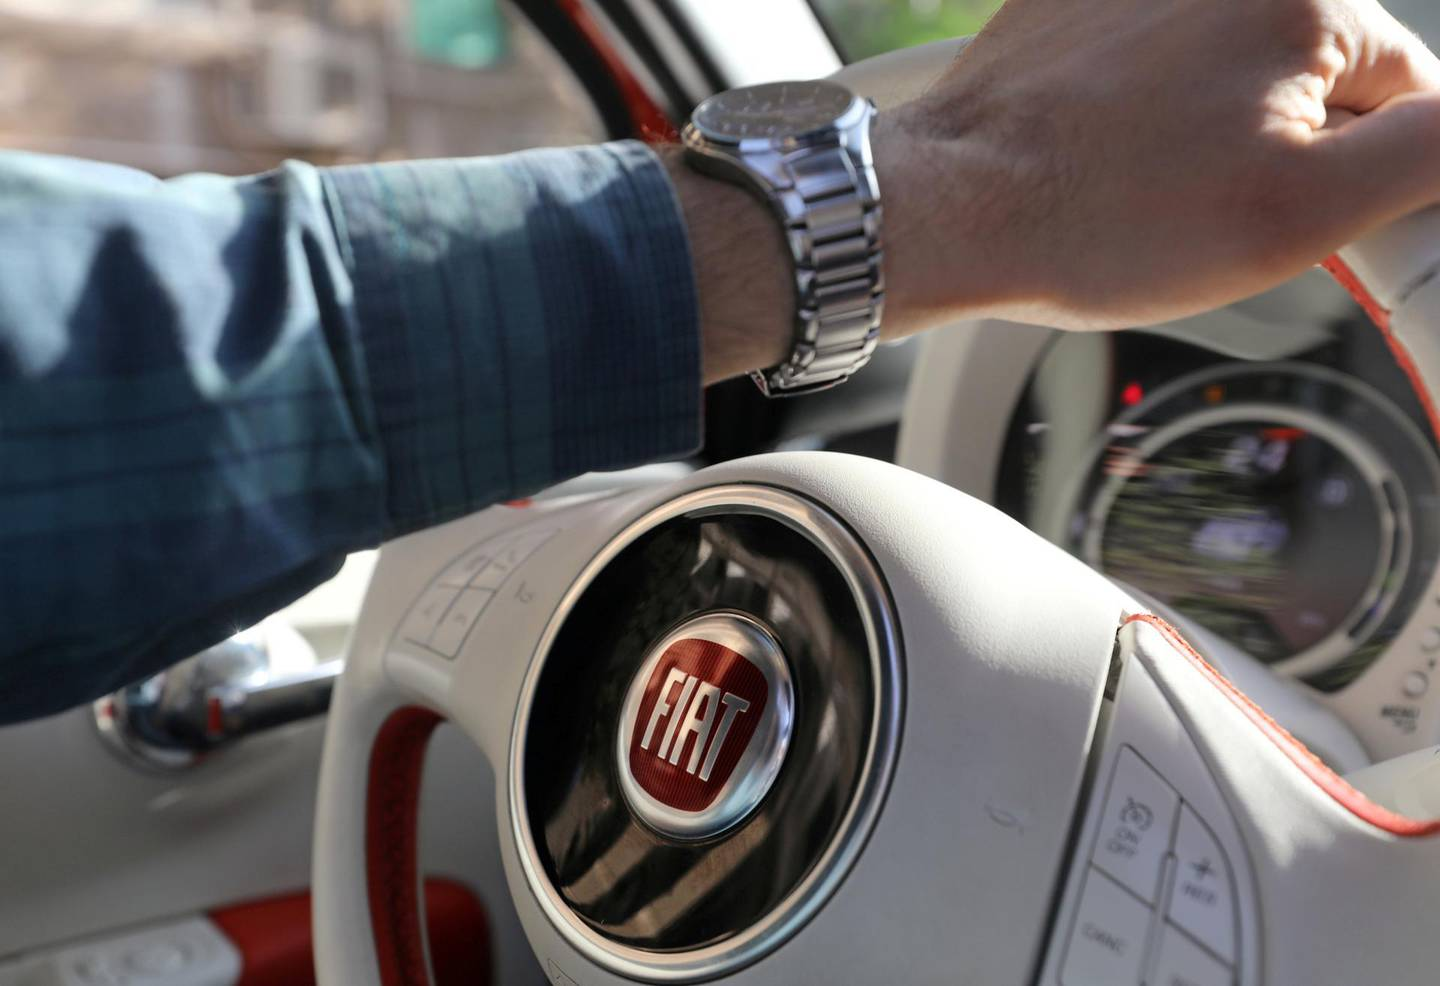 FILE PHOTO: The logo of FIAT carmaker is seen on a steering wheel in Cairo, Egypt, May 19, 2019. Picture taken May 19, 2019. REUTERS/Mohamed Abd El Ghany/File Photo